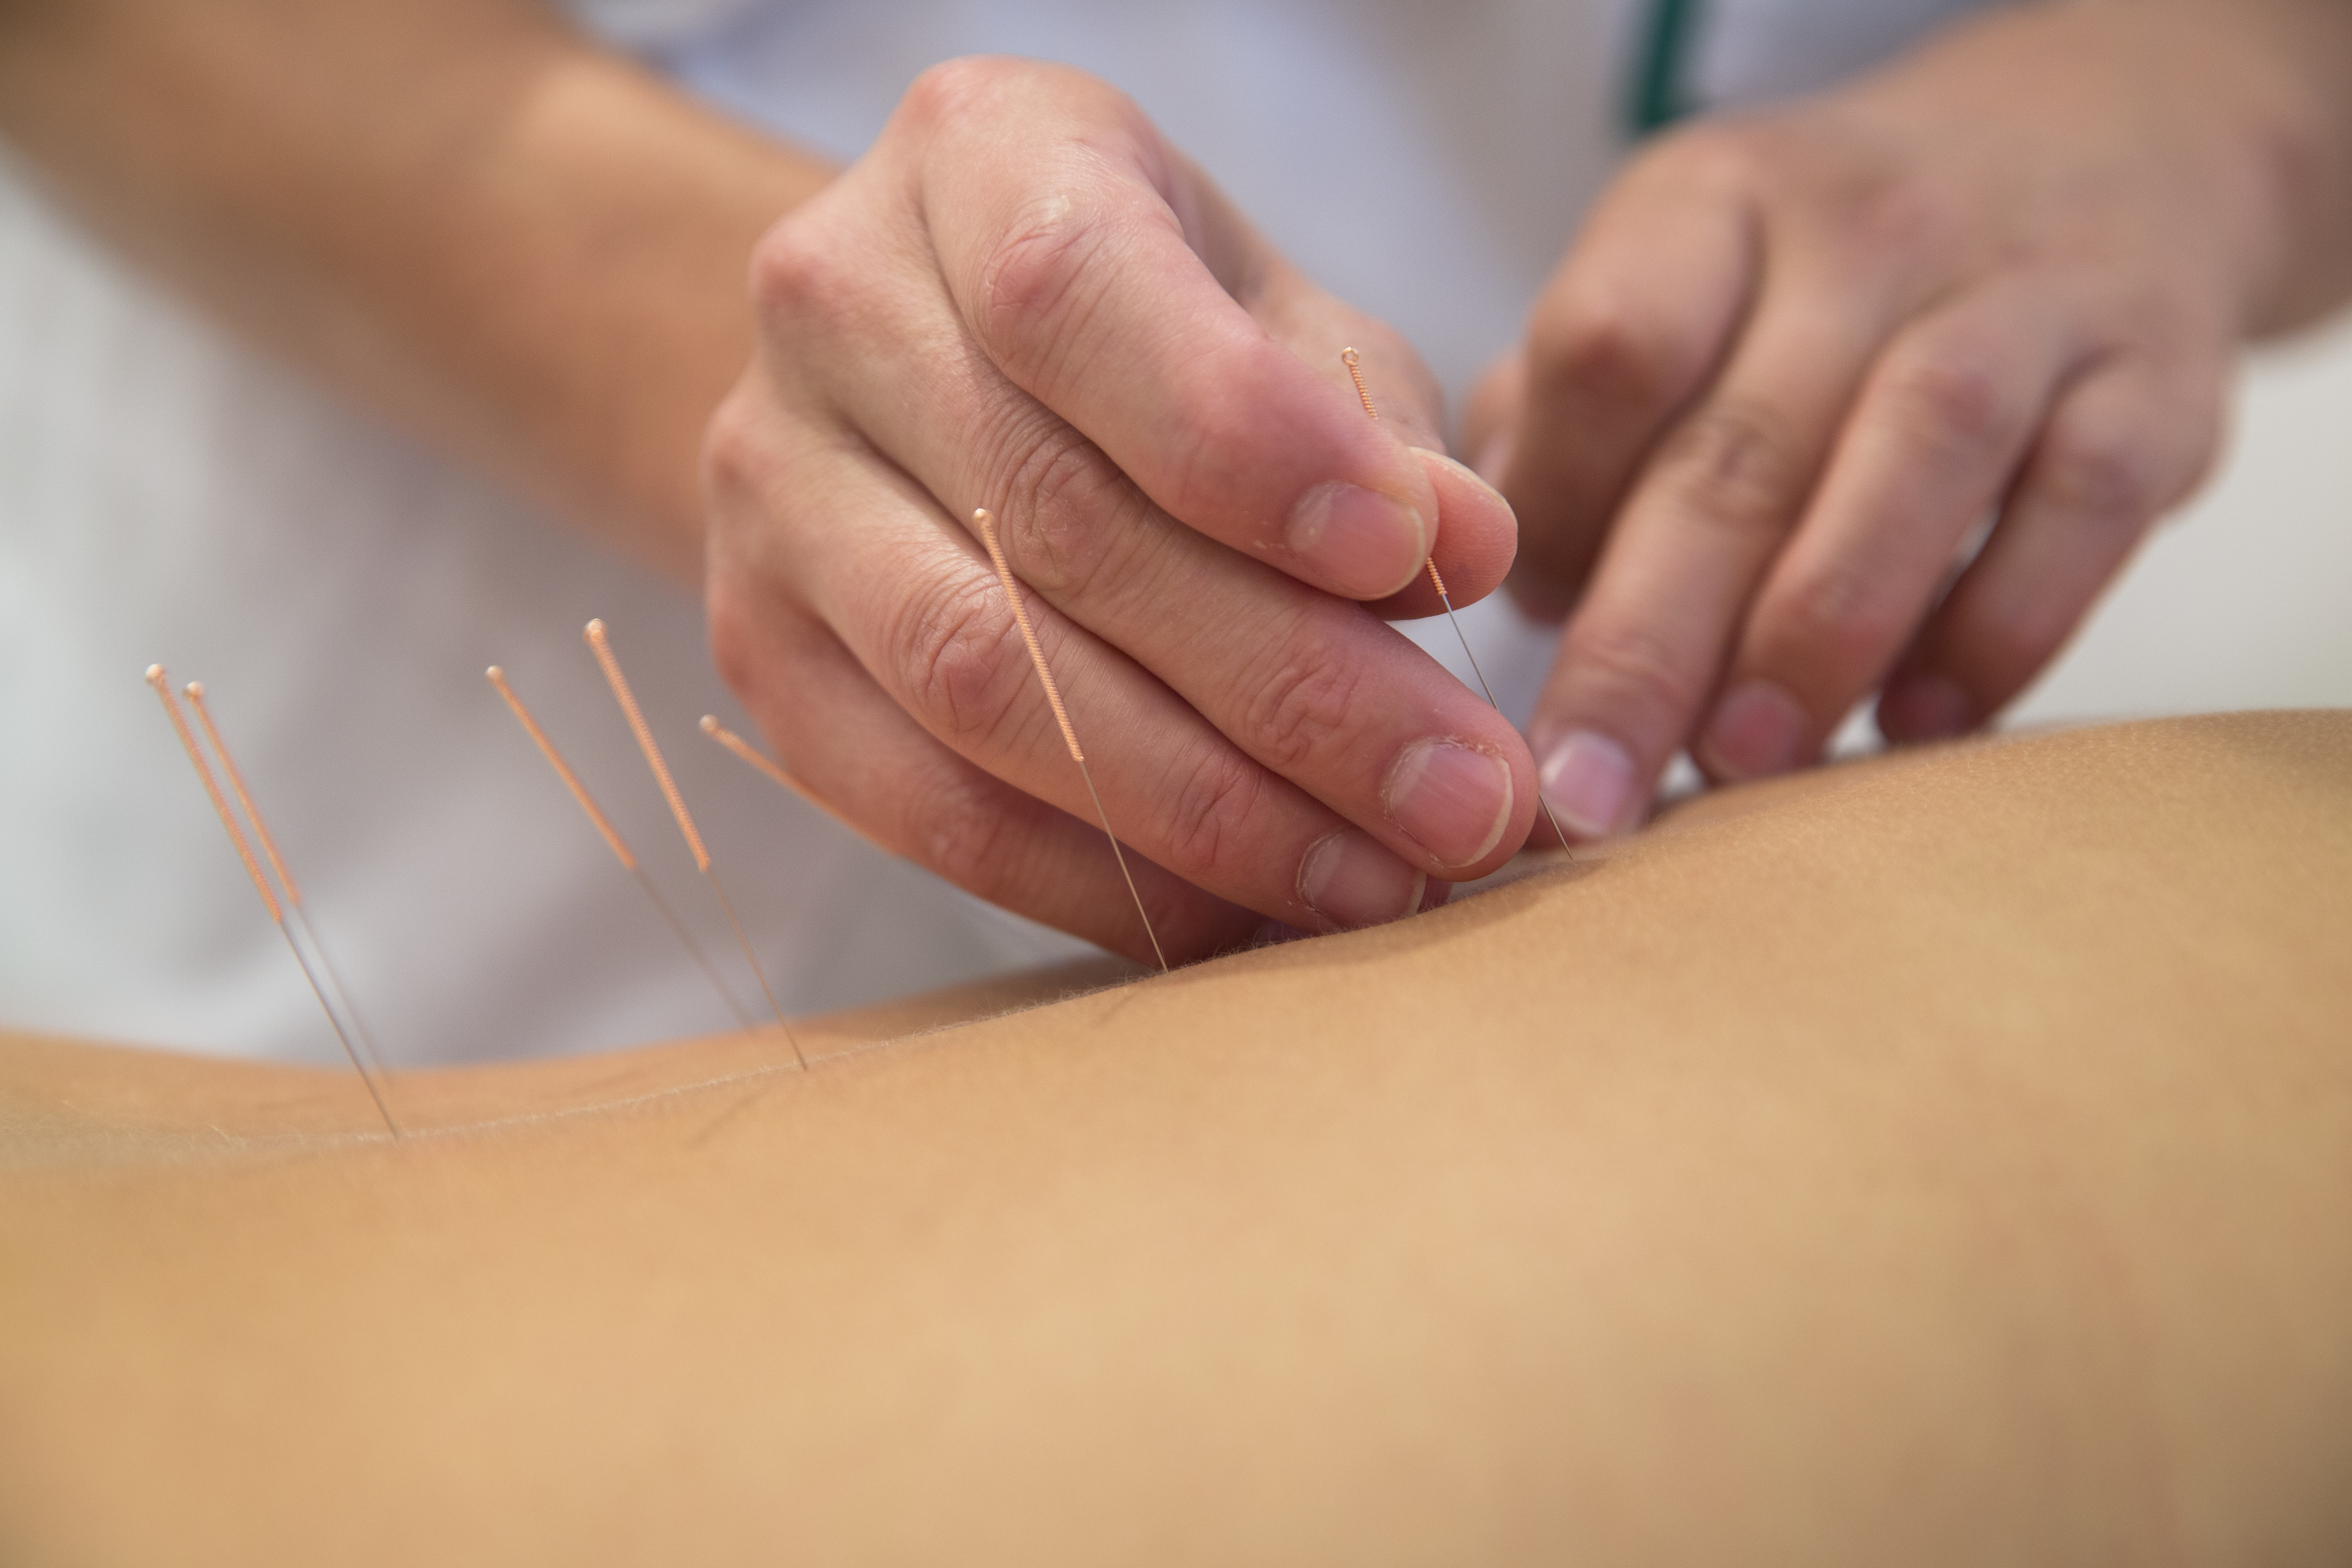 Acupuncture Therapies in Horley/Crawley, Surrey.